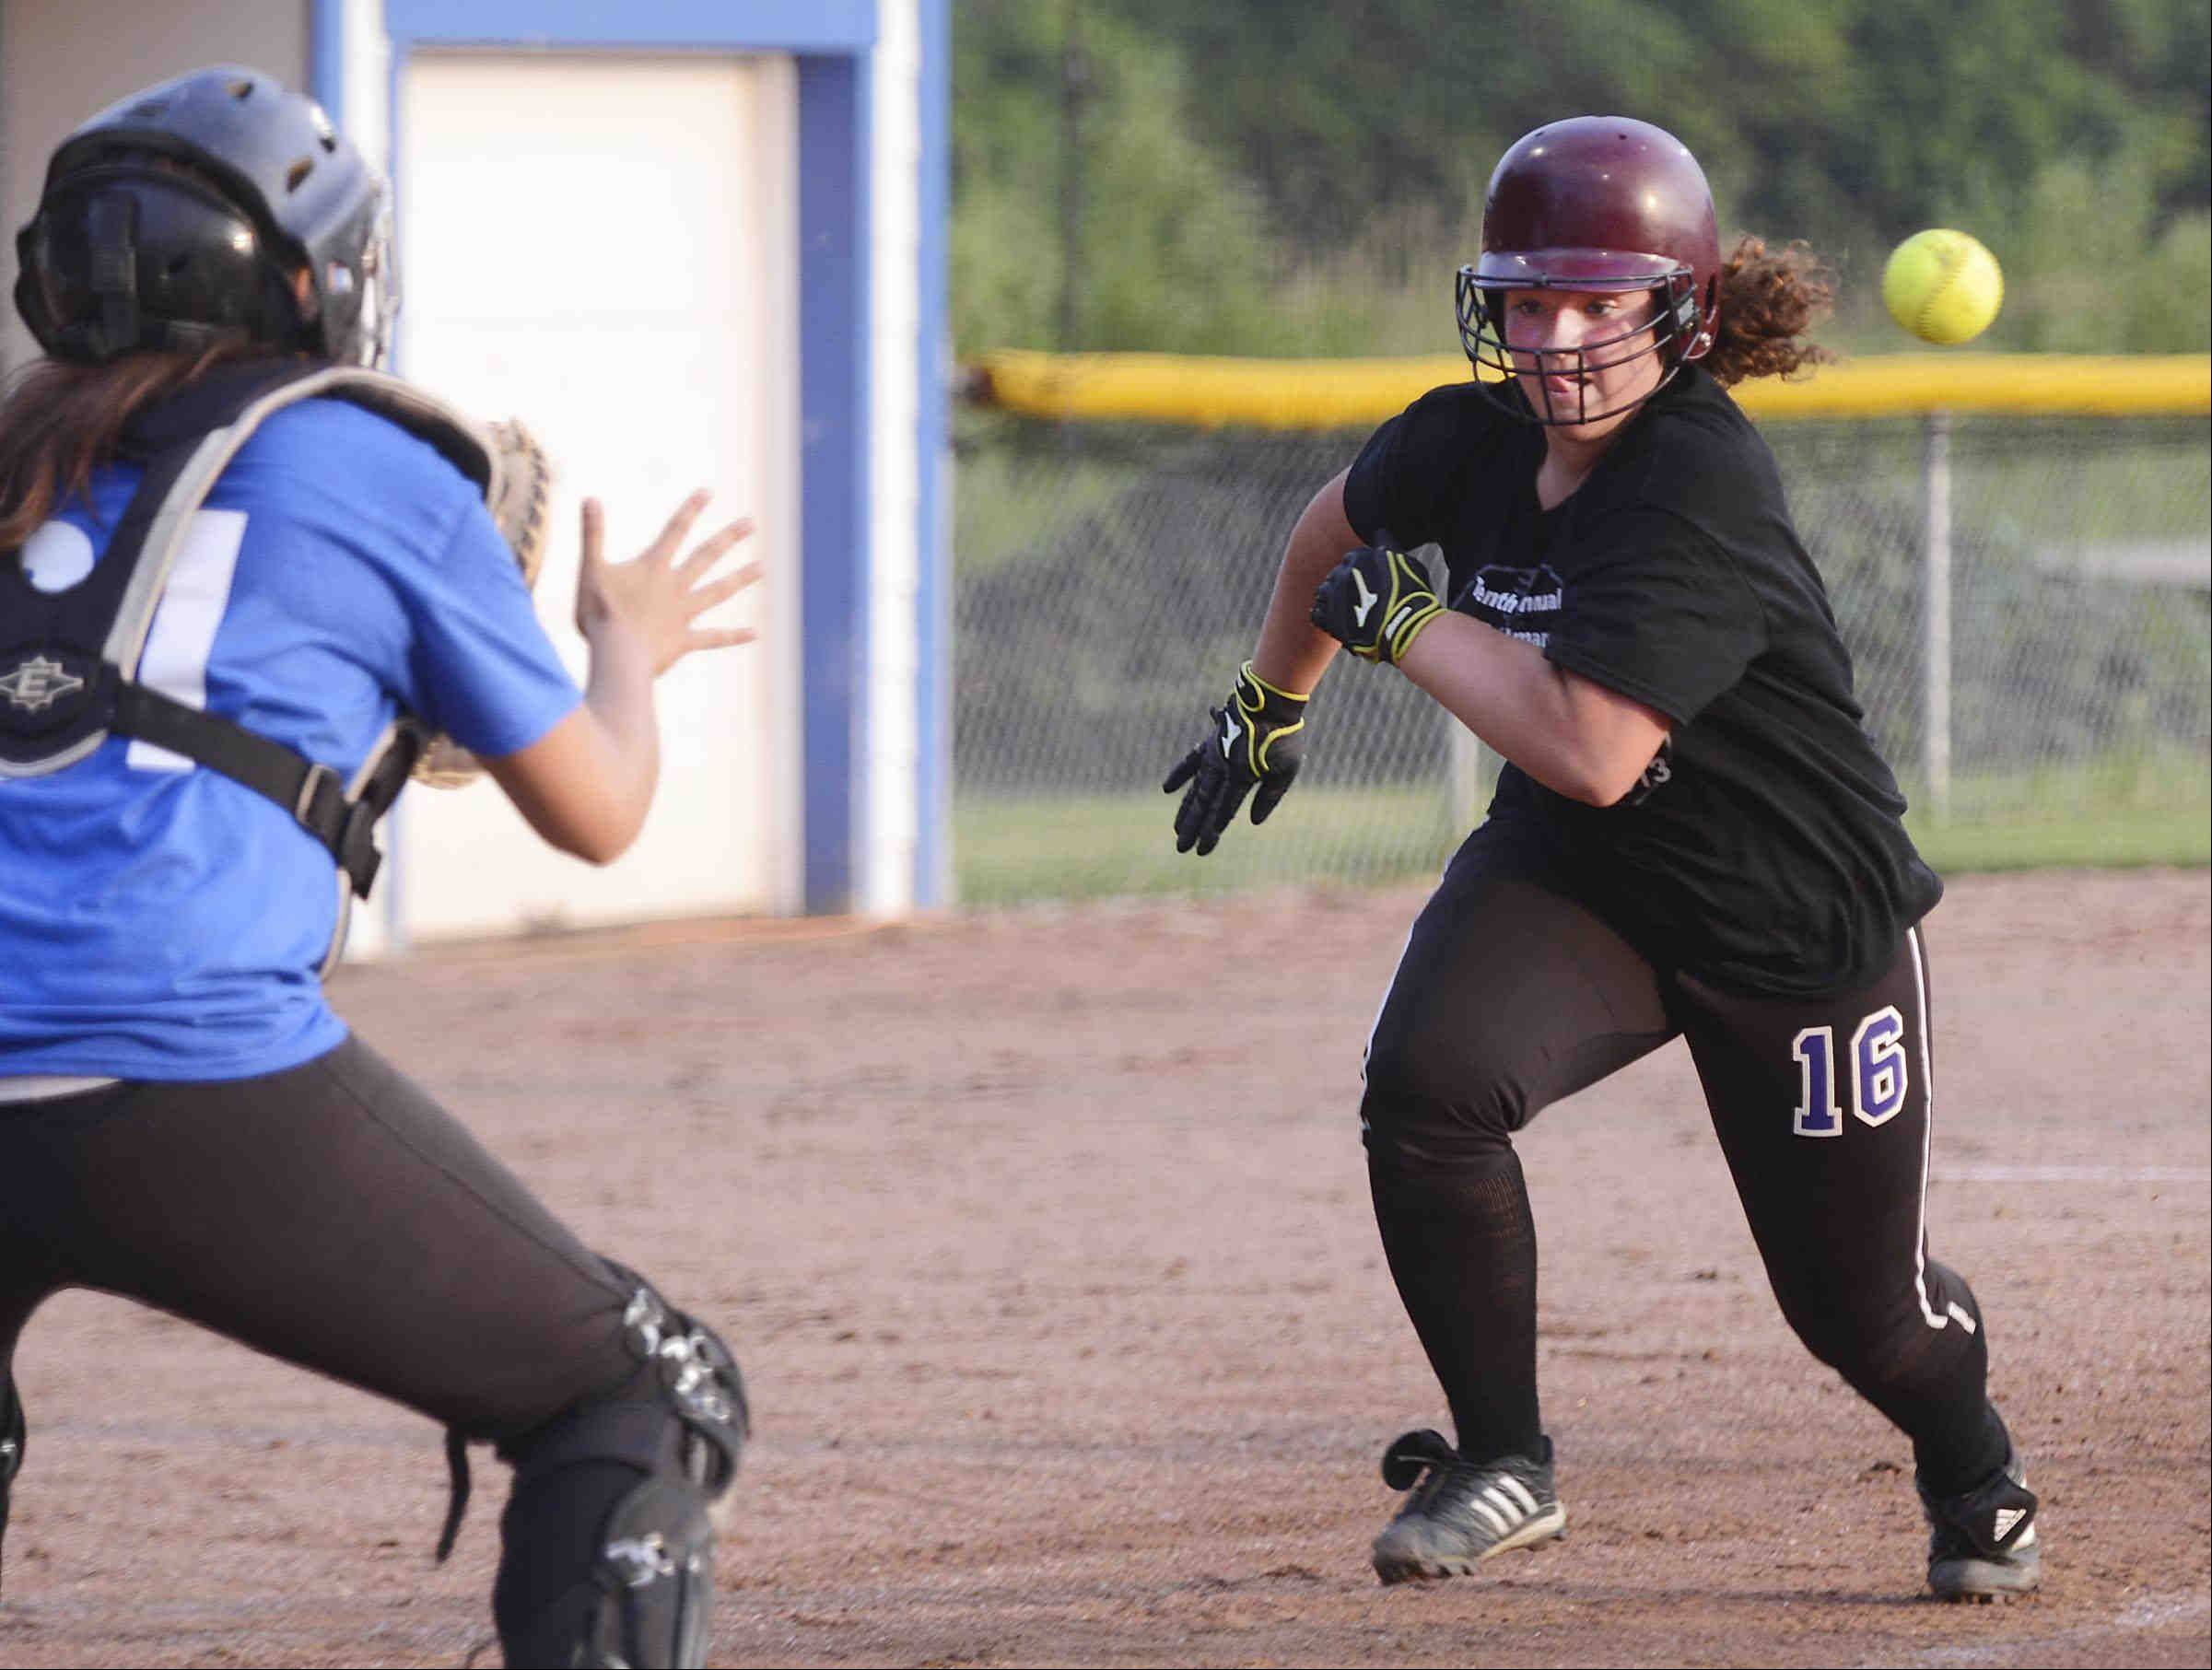 Caroline Sobeski charges toward catcher Sarah Leudo Monday during the Tenth Annual Fehlman Memorial Senior All-Star softball game at Judson University. Sobeski is an Elgin High School graduate and was playing for the East All Stars, while Leudo is a Cary-Grove High School grad playing for the West All Stars. Sobeski was tagged out on the throw from shortstop Kali Kossakowski of St. Edward.